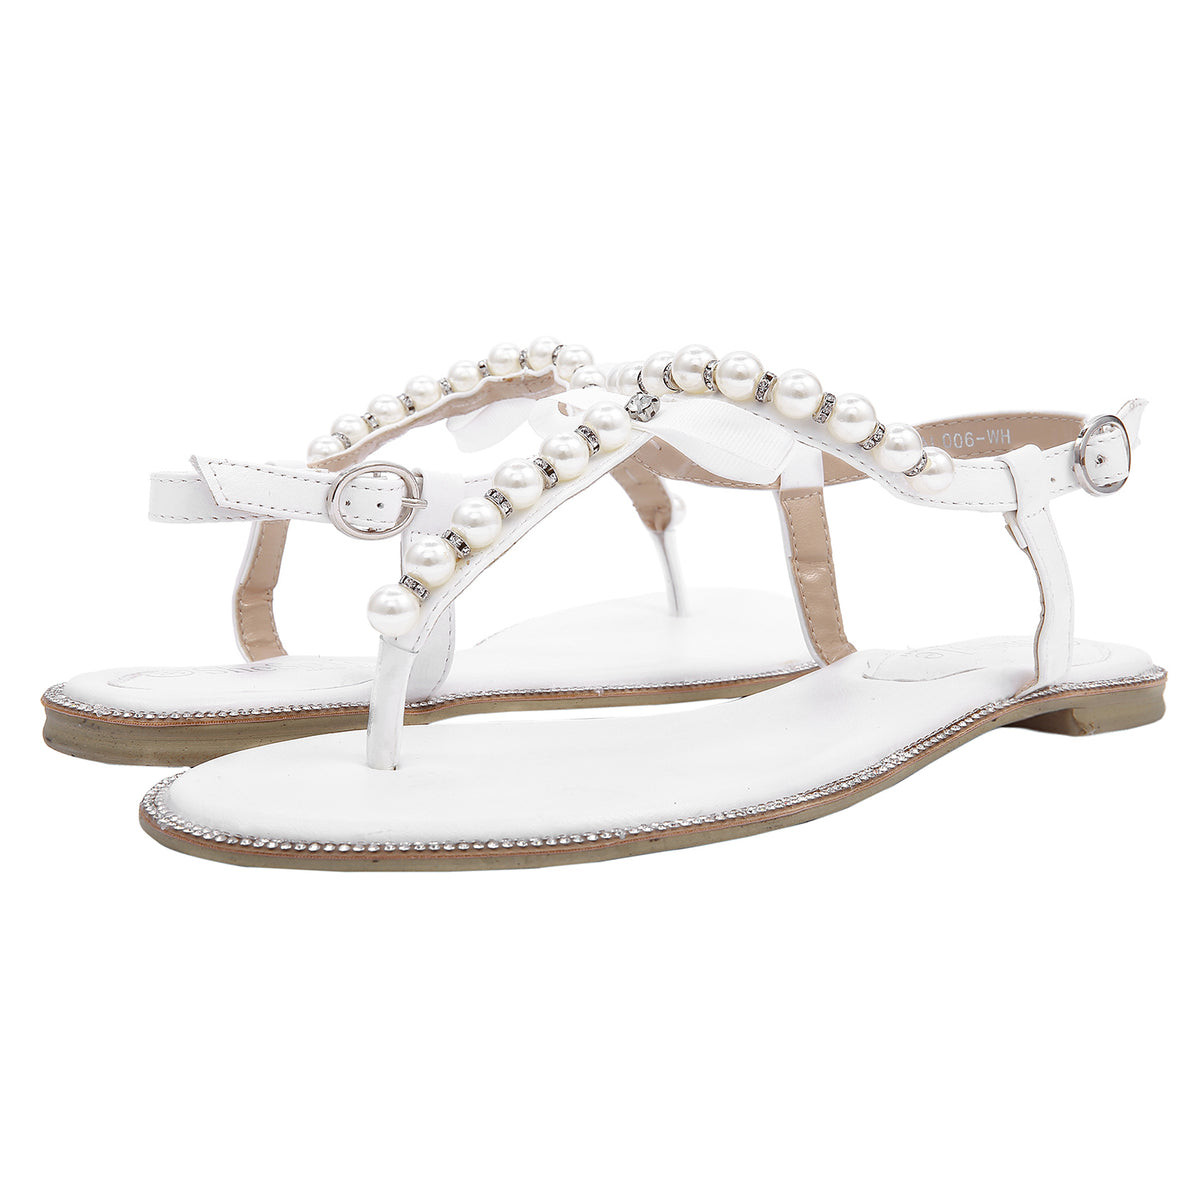 fc13a0e86 SheSole Women White Pearl Flat Sandals Flip Flops Bridesmaid Beach Wedding  Shoes. flat sandals. flat sandals